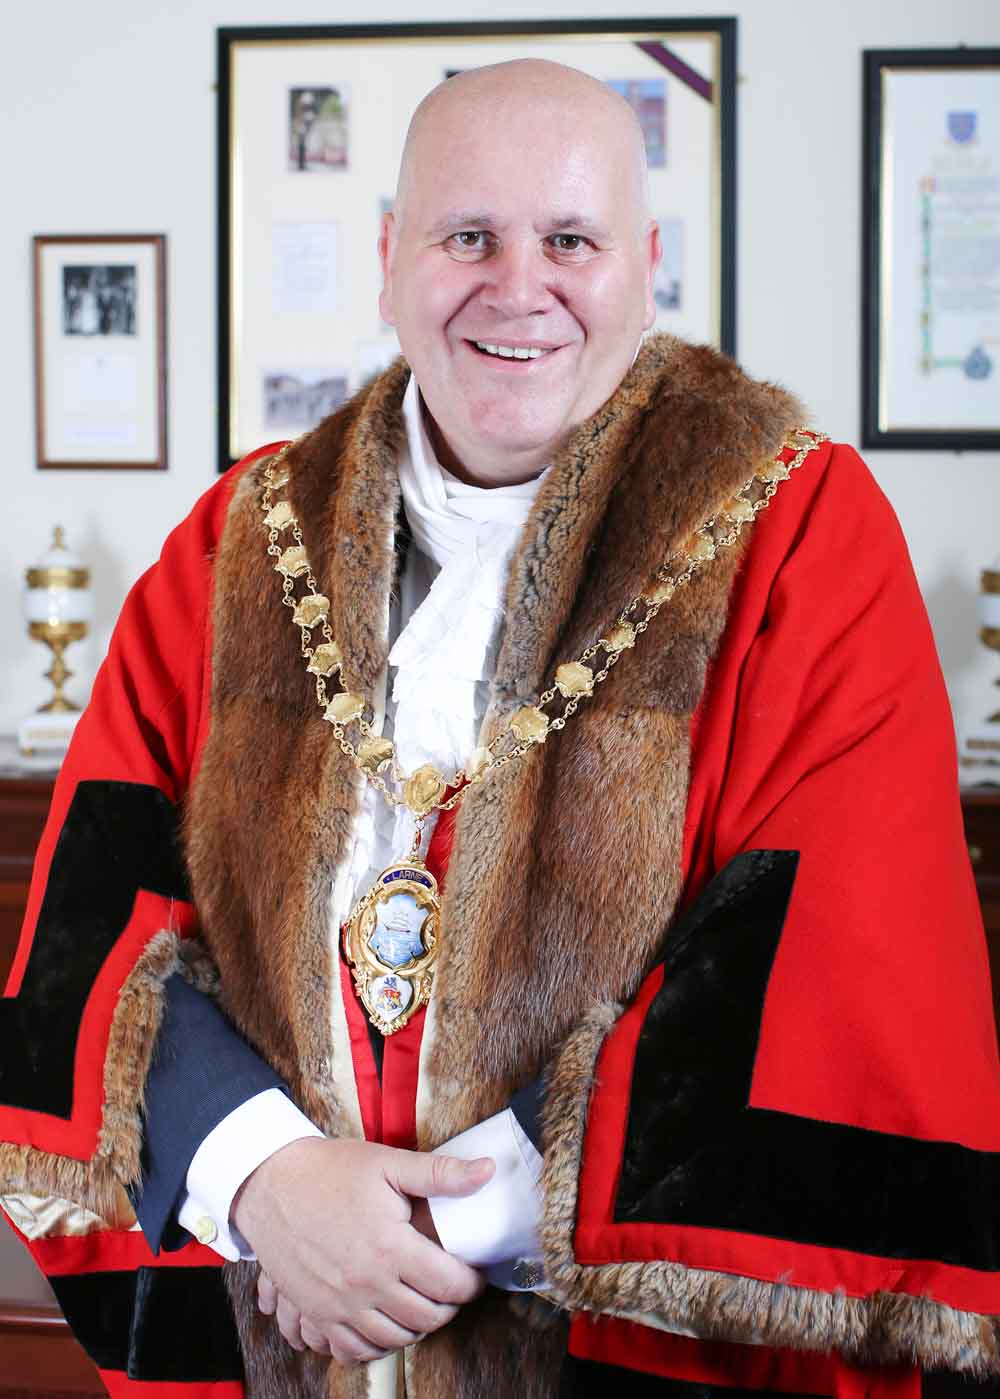 Mayor of Mid and East Antrim Borough, Councillor Paul Reid